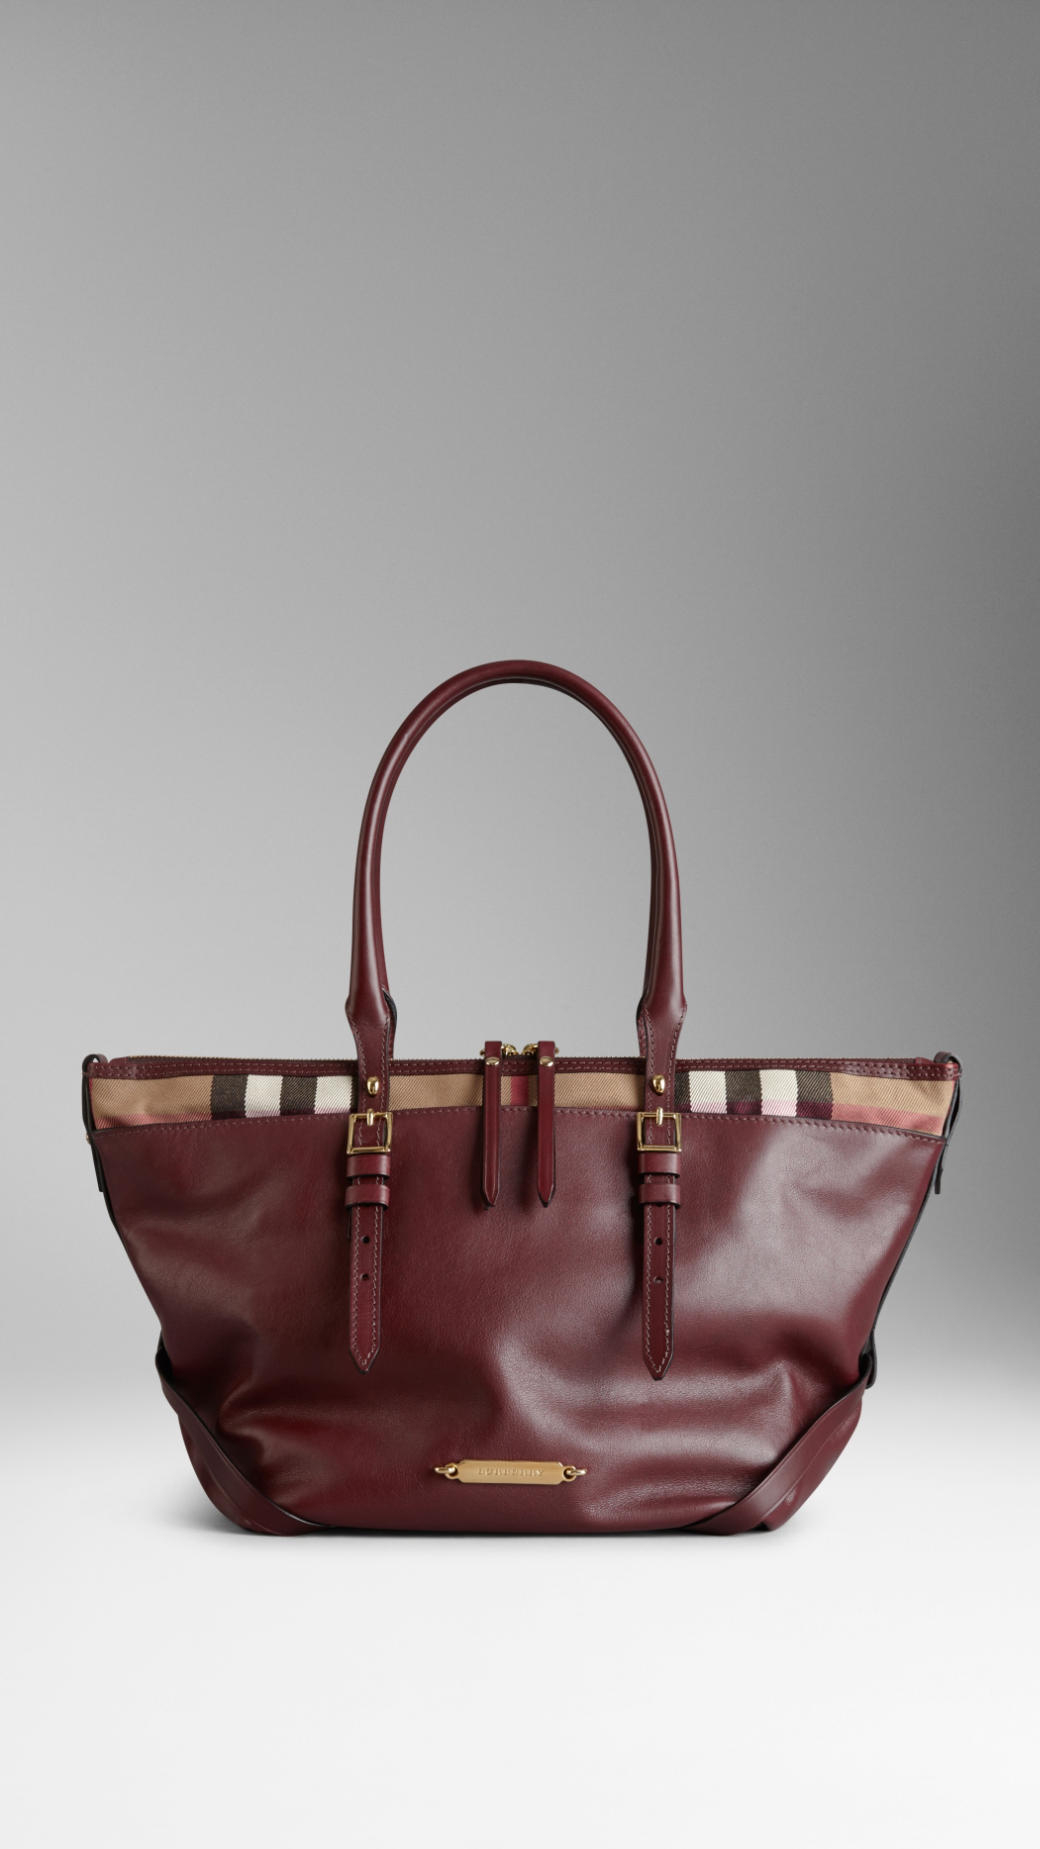 246f4218d237 Burberry Small Leather and House Check Tote Bag in Red - Lyst